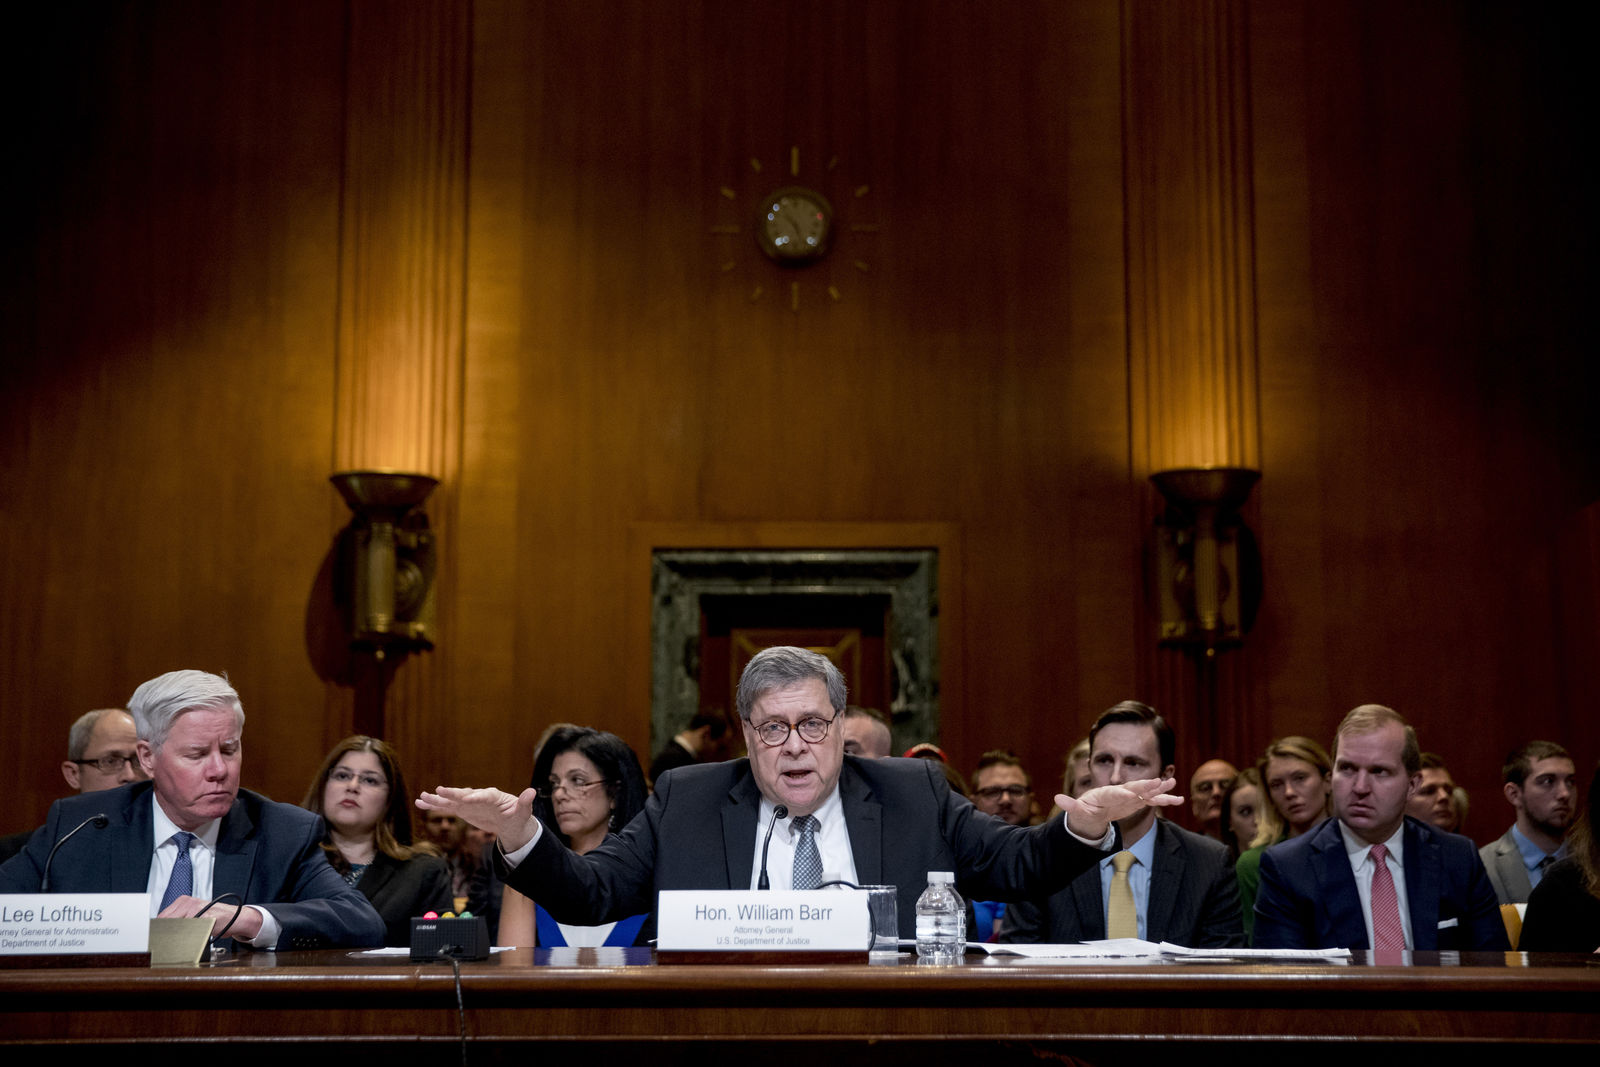 Attorney General William Barr reacts as he appears before a Senate Appropriations subcommittee to make his Justice Department budget request, Wednesday, April 10, 2019, in Washington. (AP Photo/Andrew Harnik)